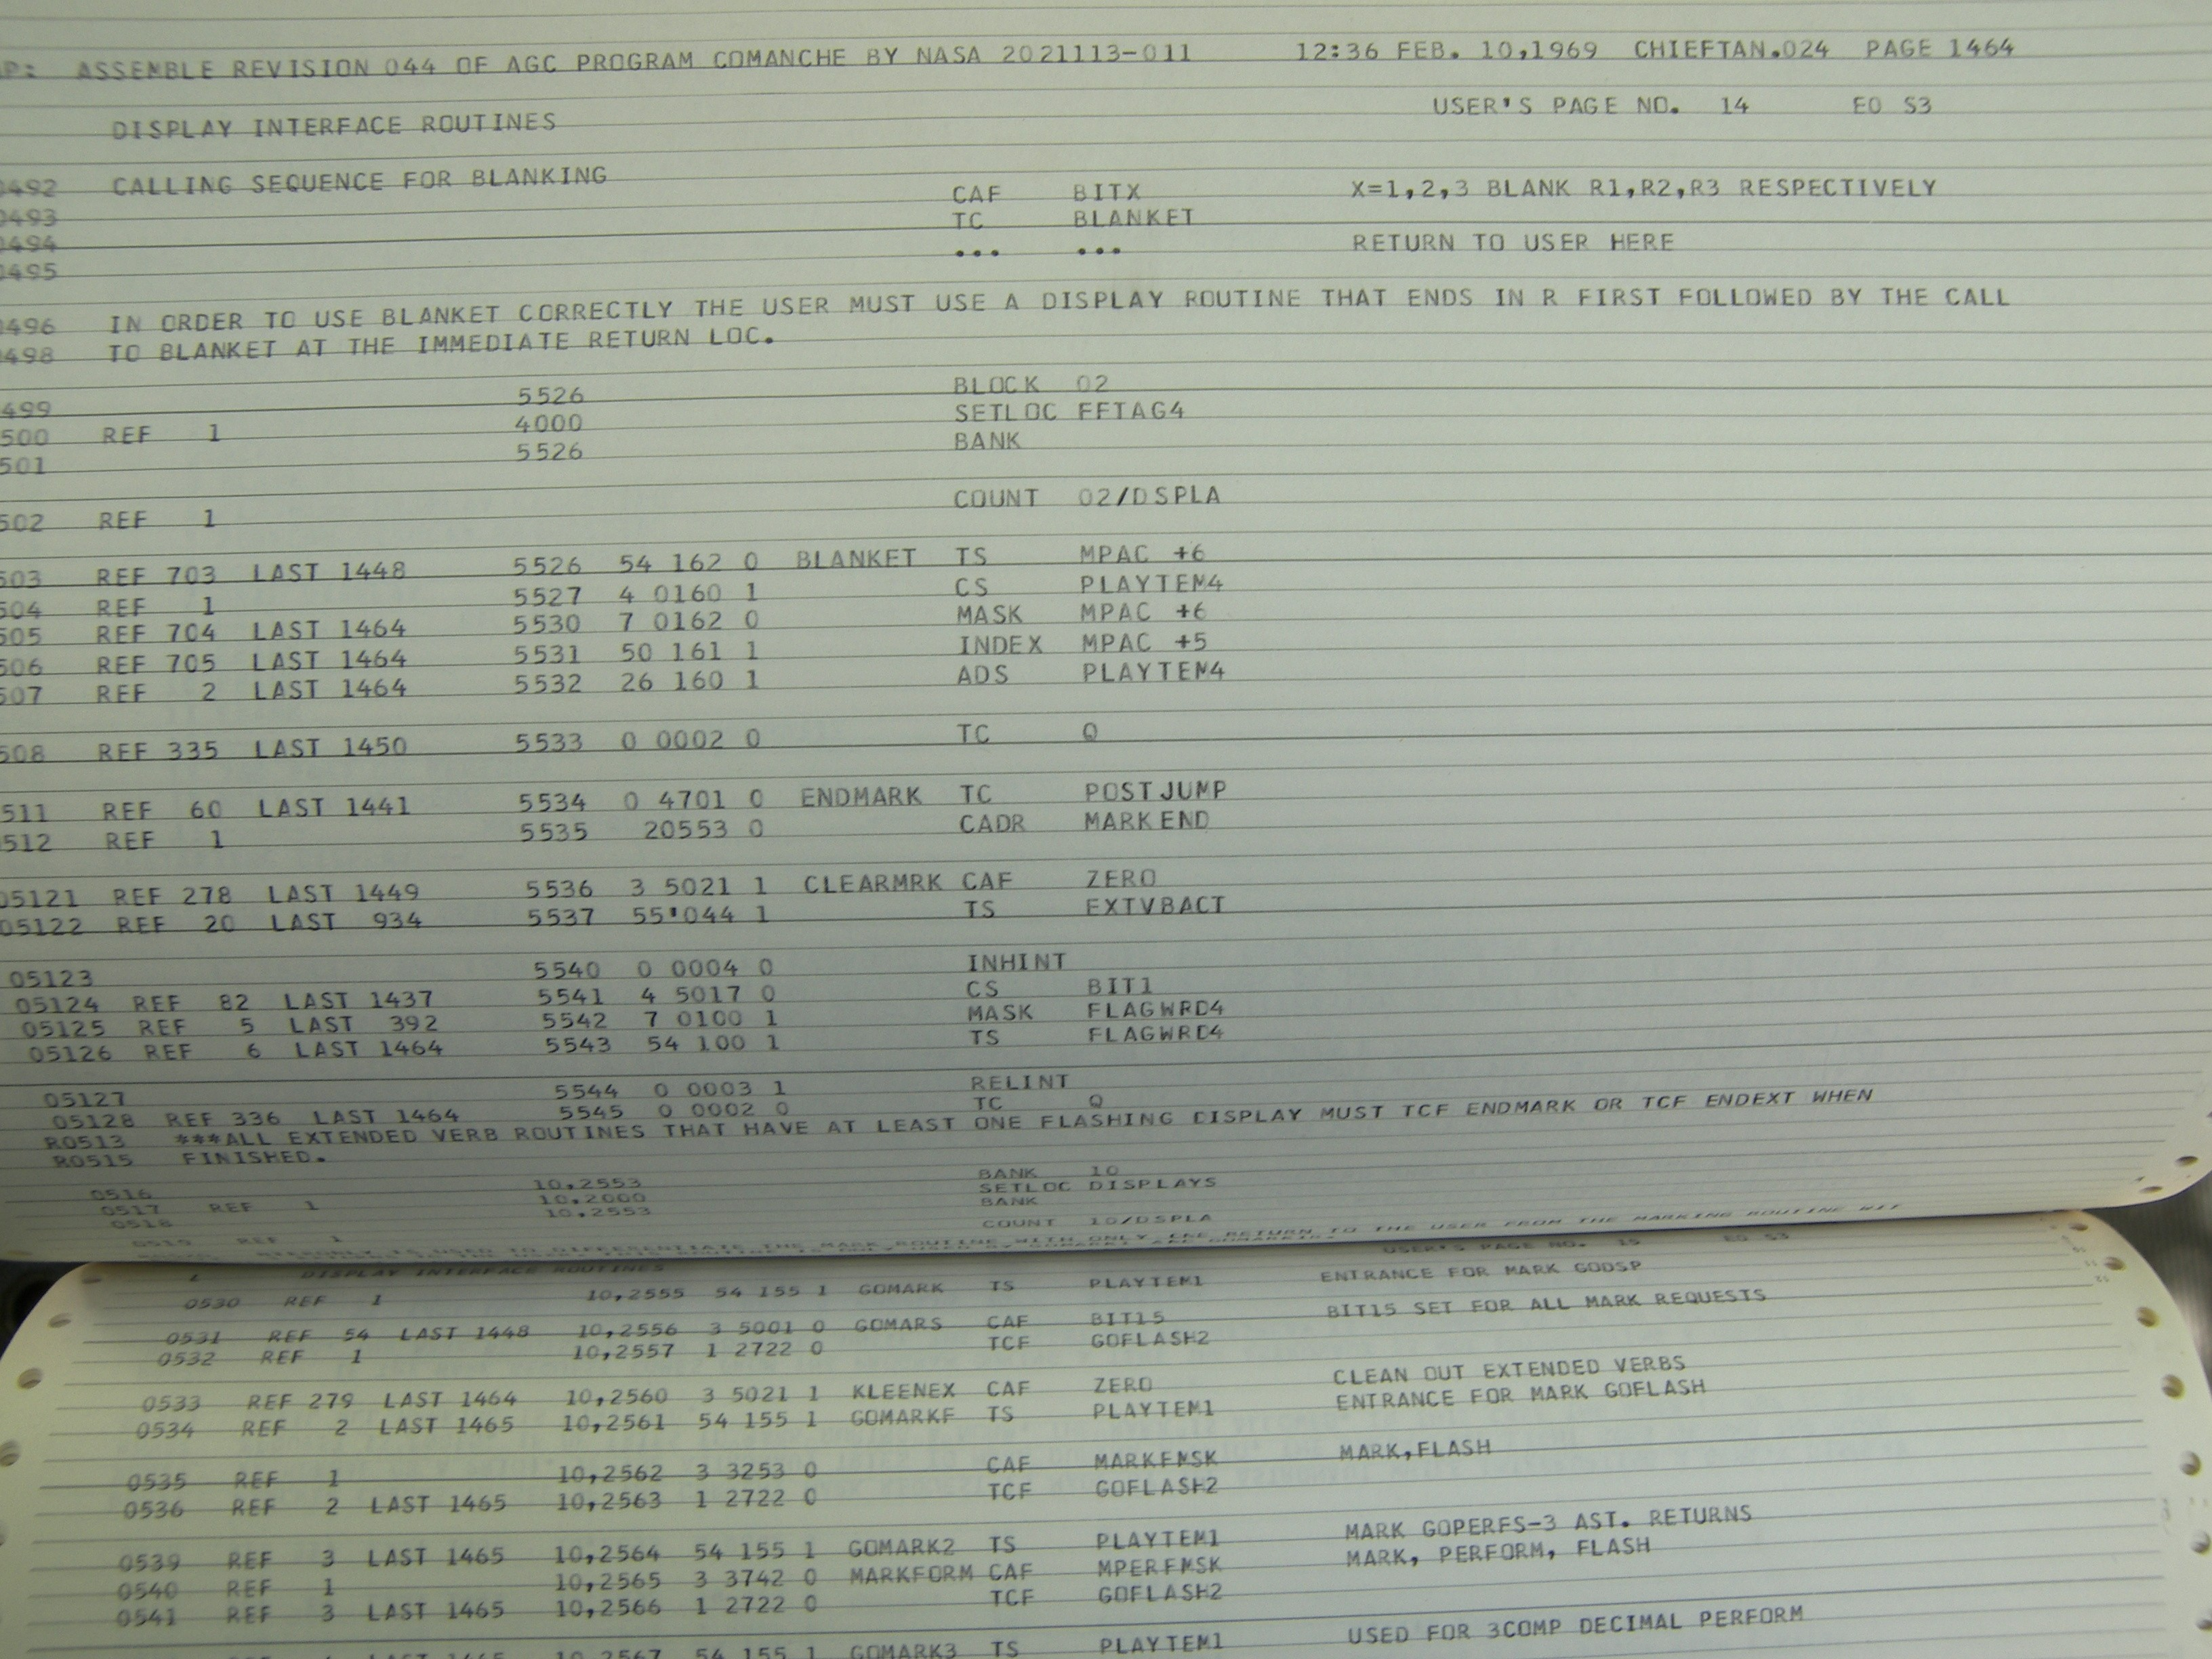 tiny part of the printout of the AGC source code (contained in one of these listings) for the on board flight software for the Apollo Guidance Computer. Credit: Margaret Hamilton